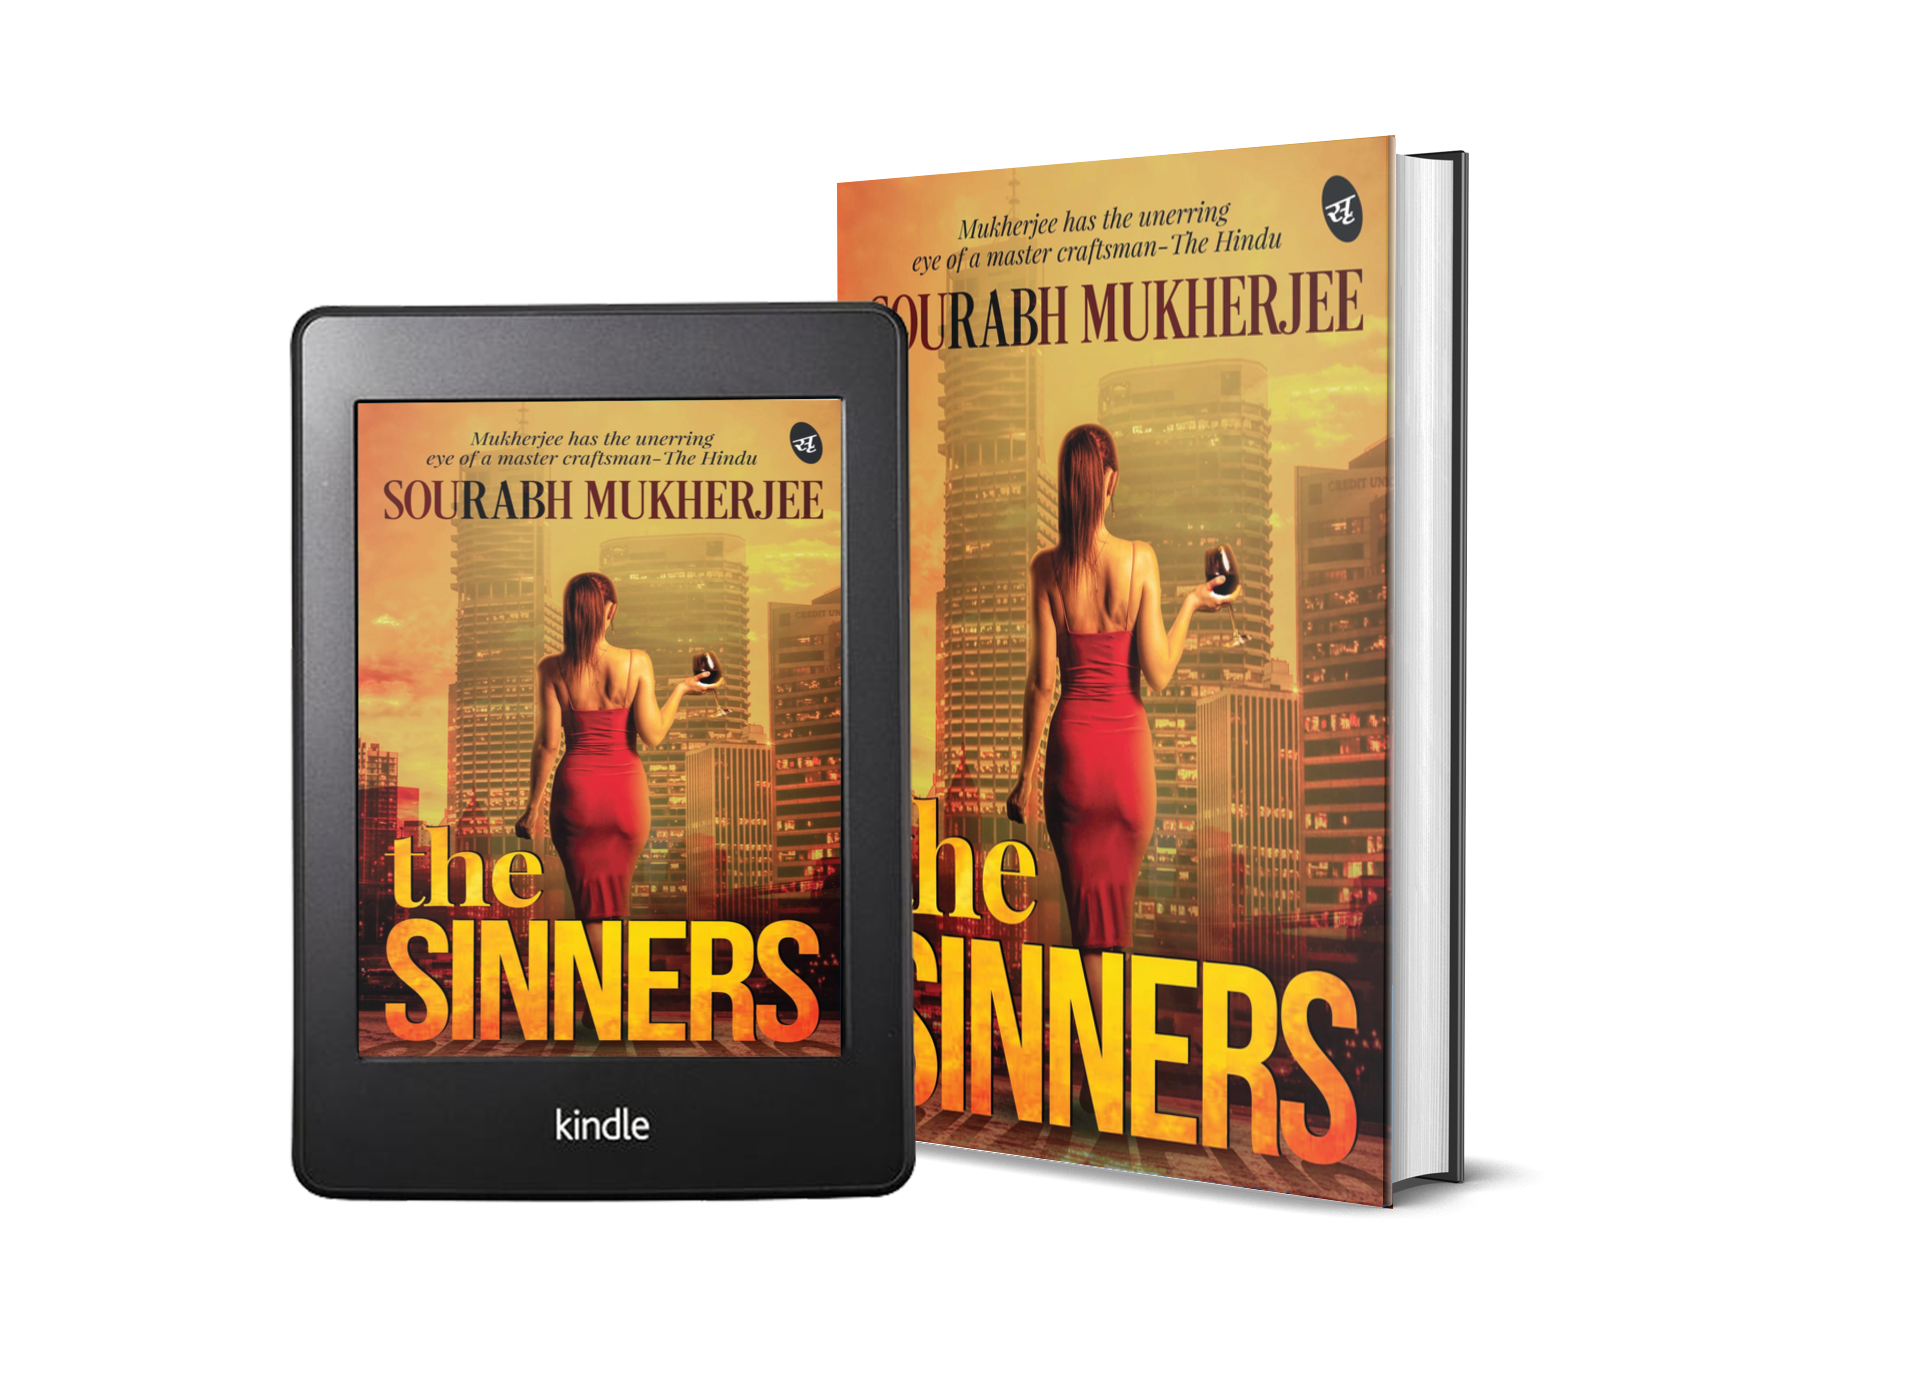 The Sinners 3D Cover copy